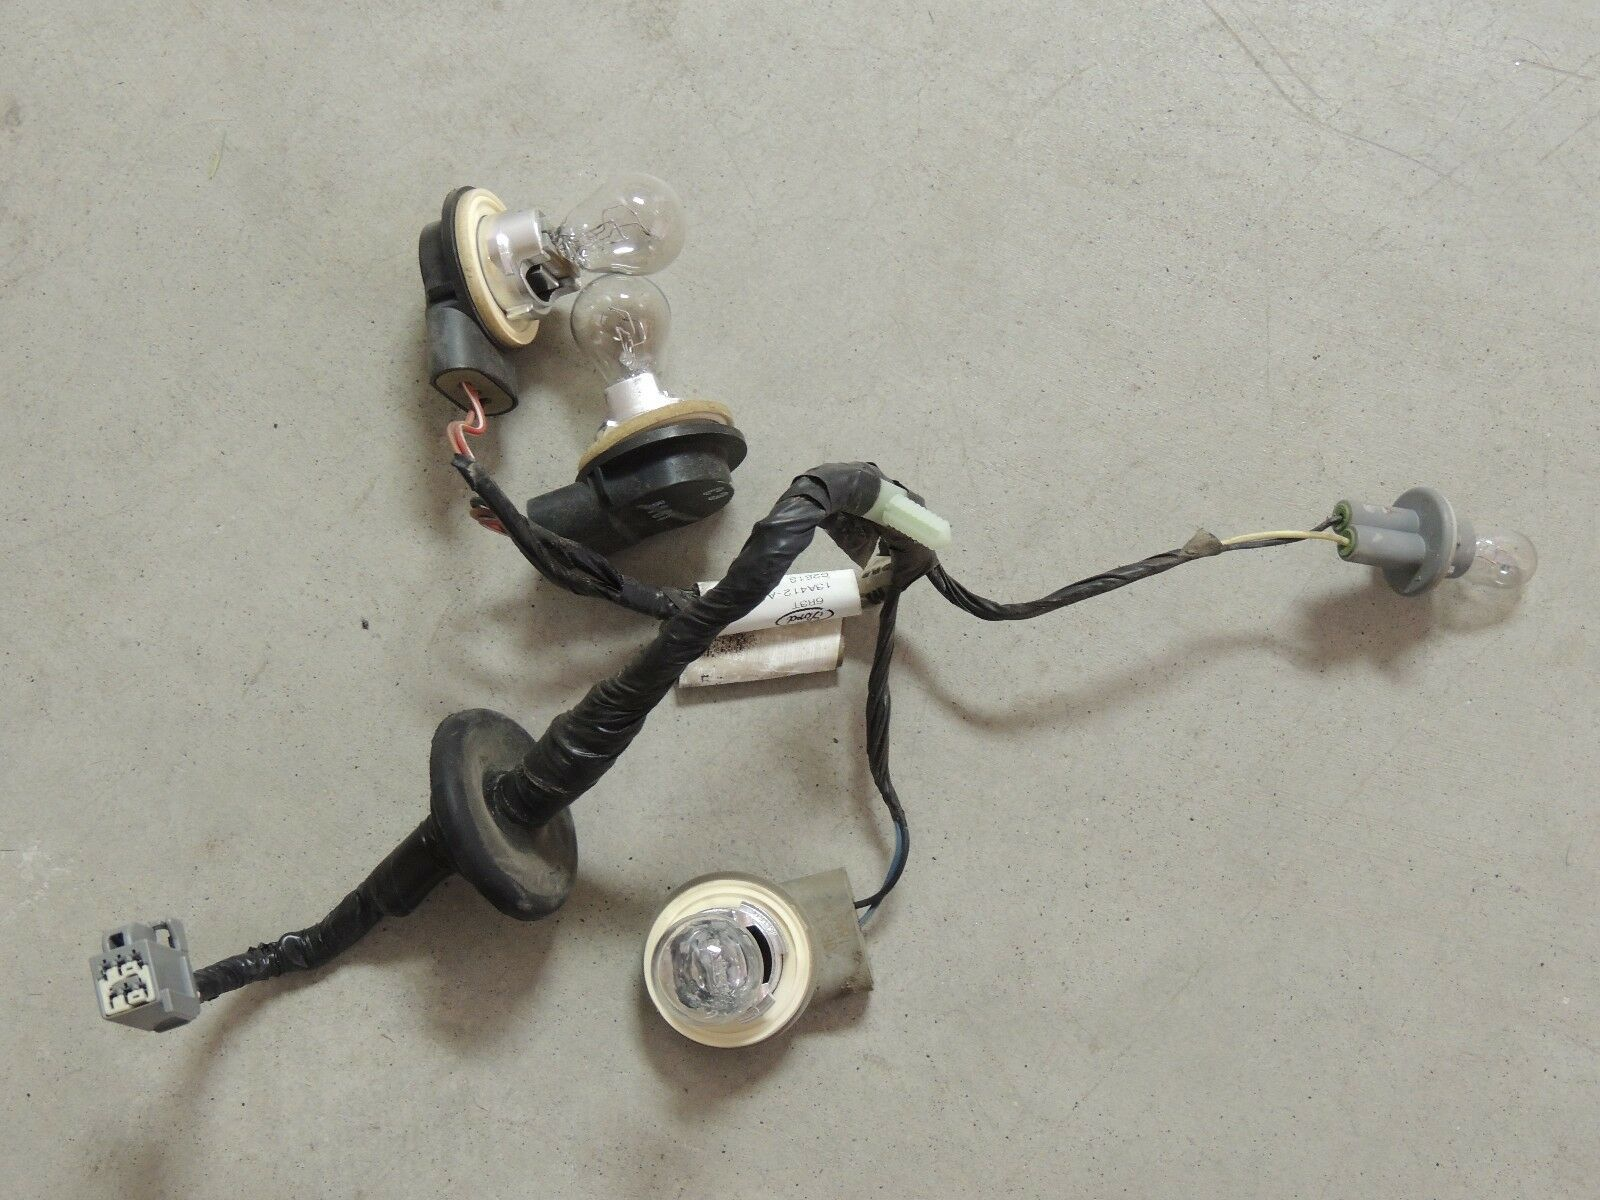 05-09 Ford Mustang tail light Wiring harness, bulb sockets oem plugs LH OR  1 of 1Only 1 available See More